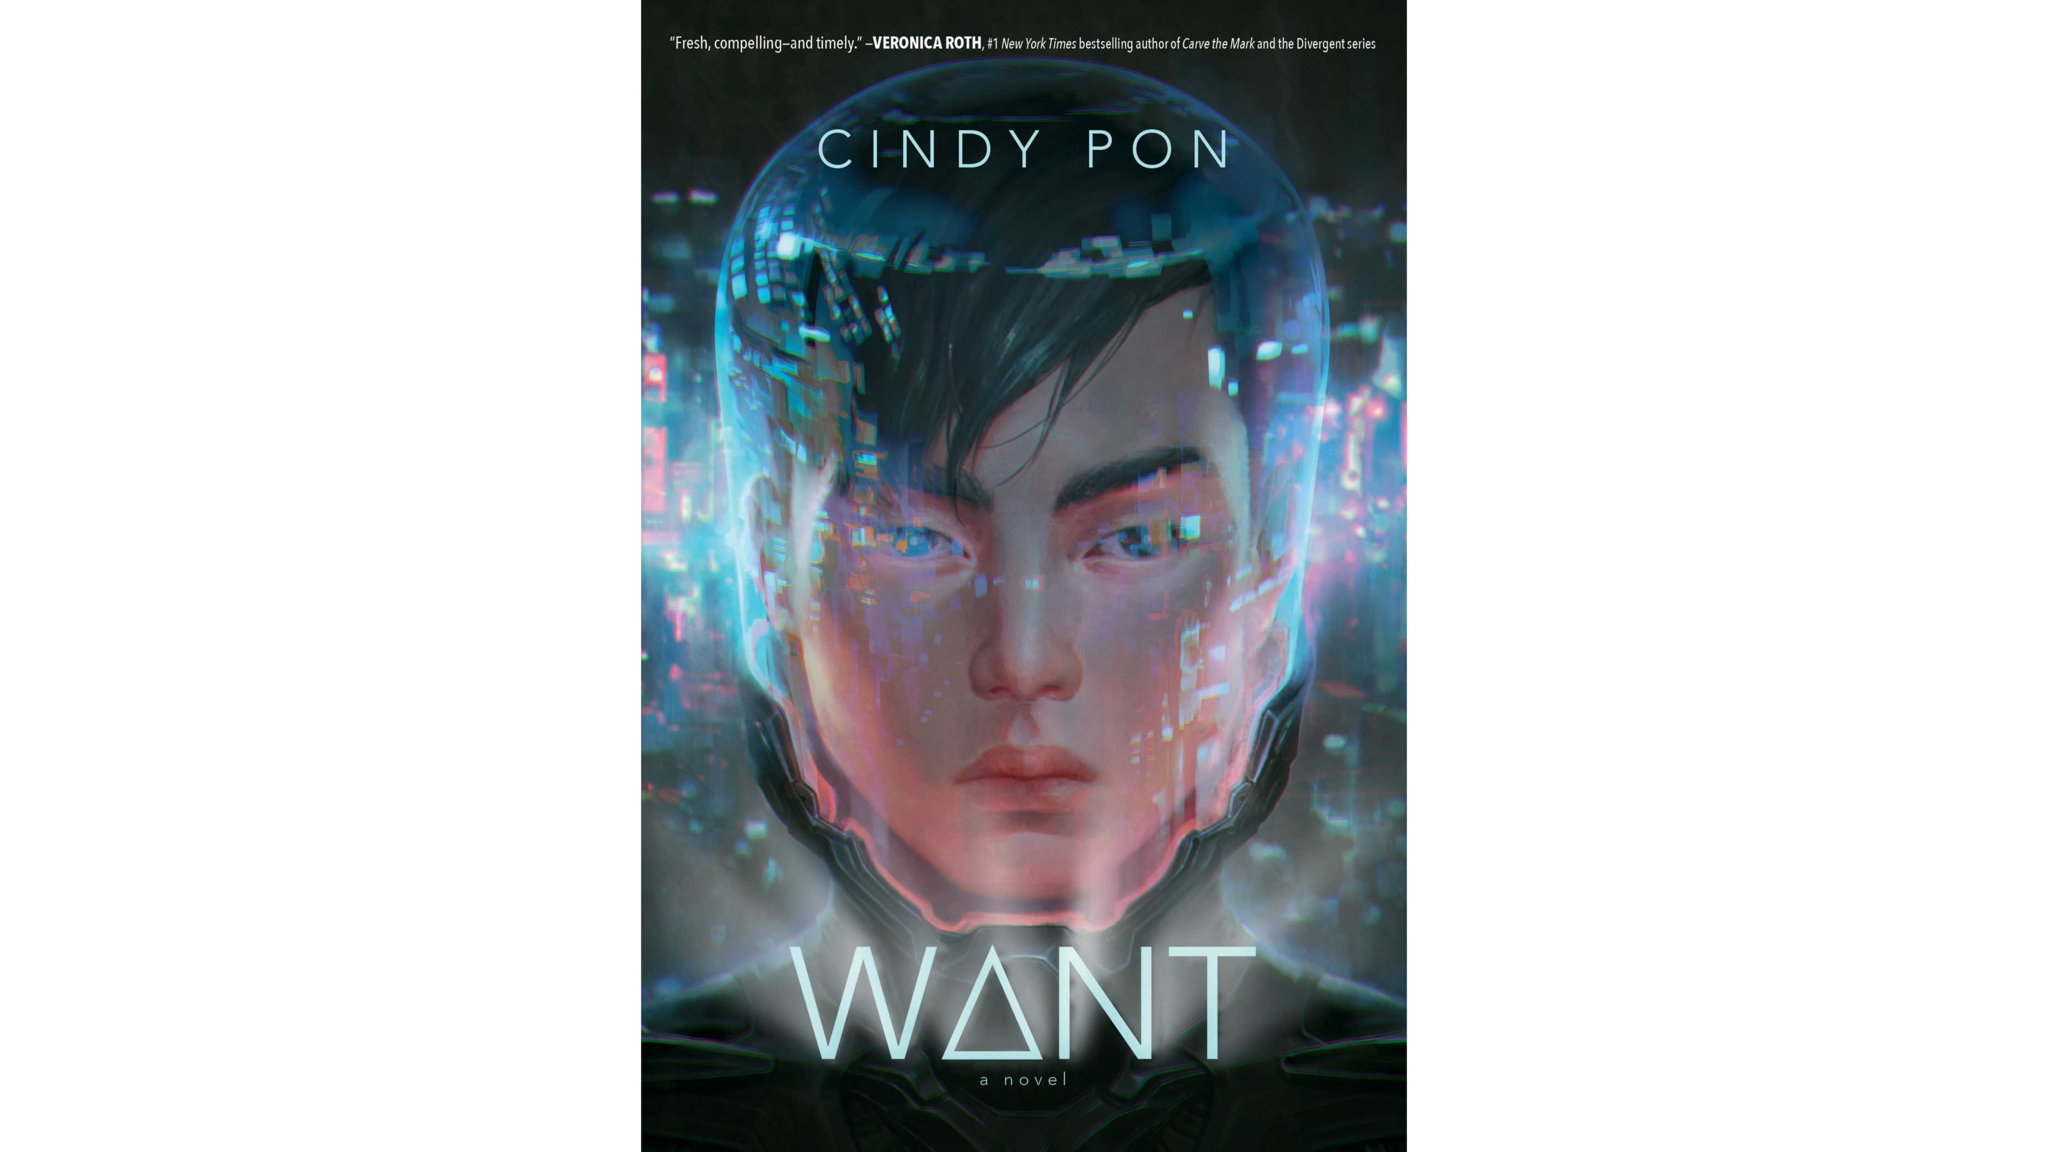 """Want"" by Cindy Pon"